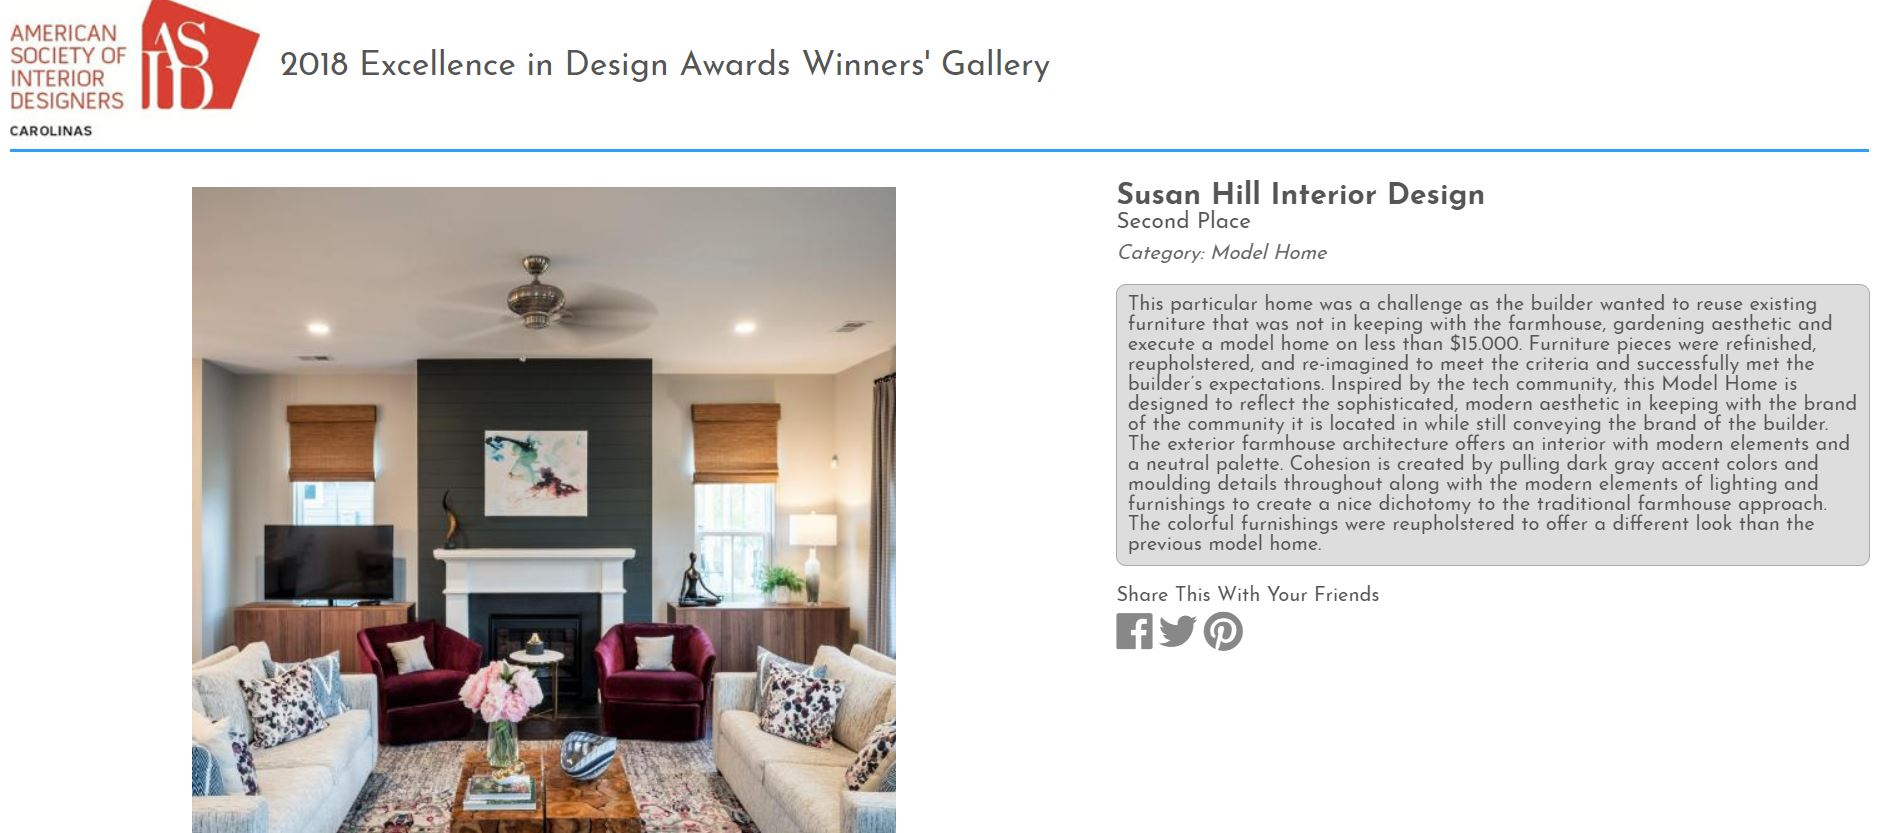 ASID_2018_award_snip_nexton_second_place.JPG